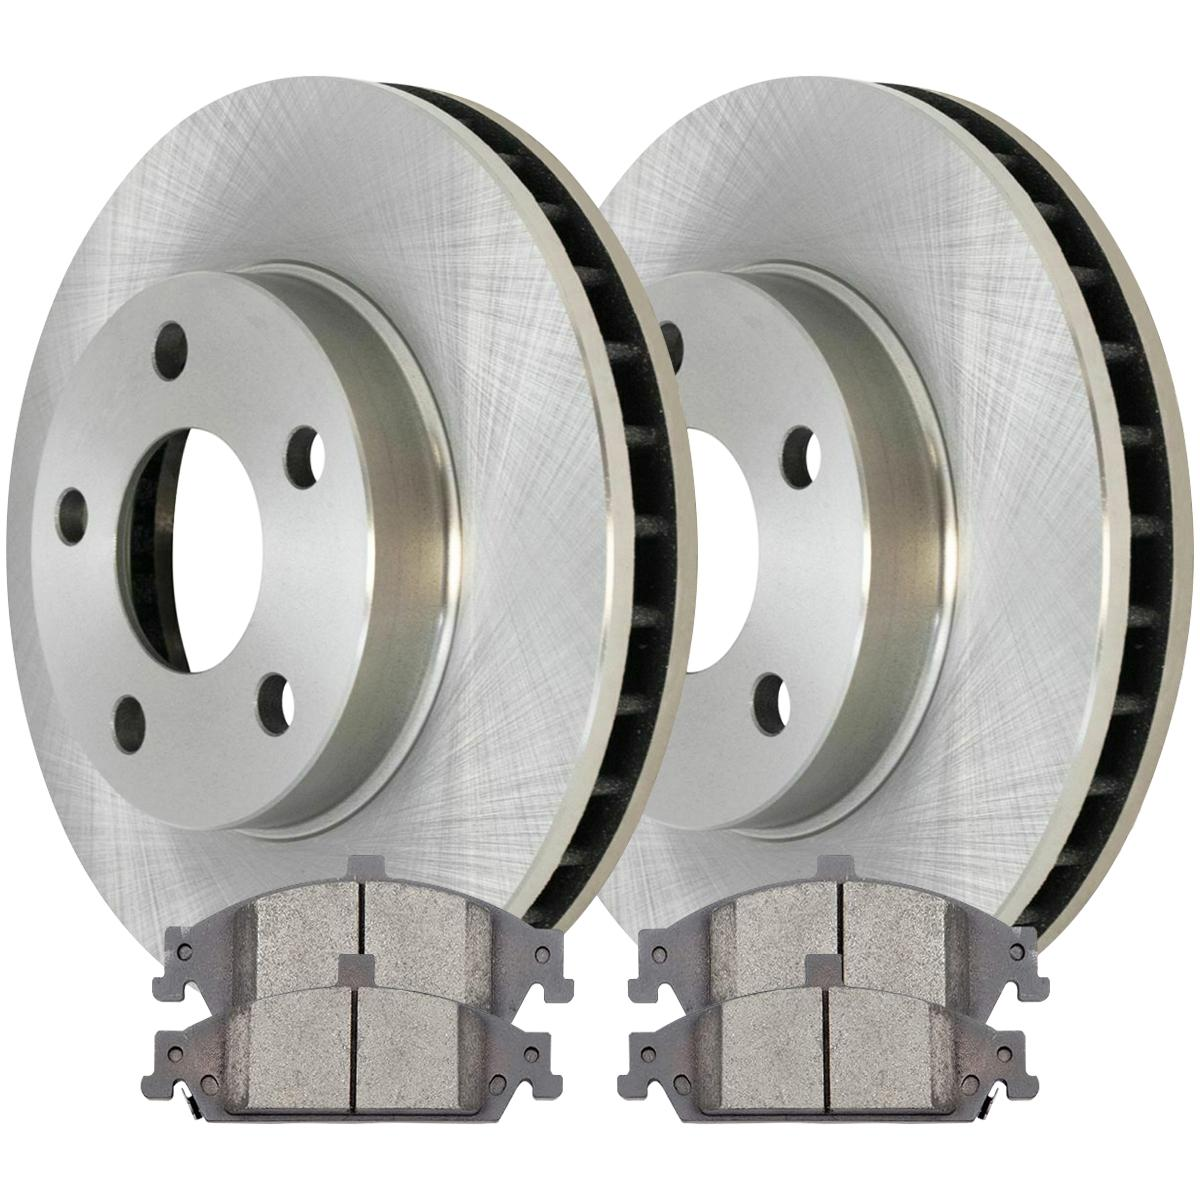 AutoShack R65150R65149 Front and Rear Brake Rotors